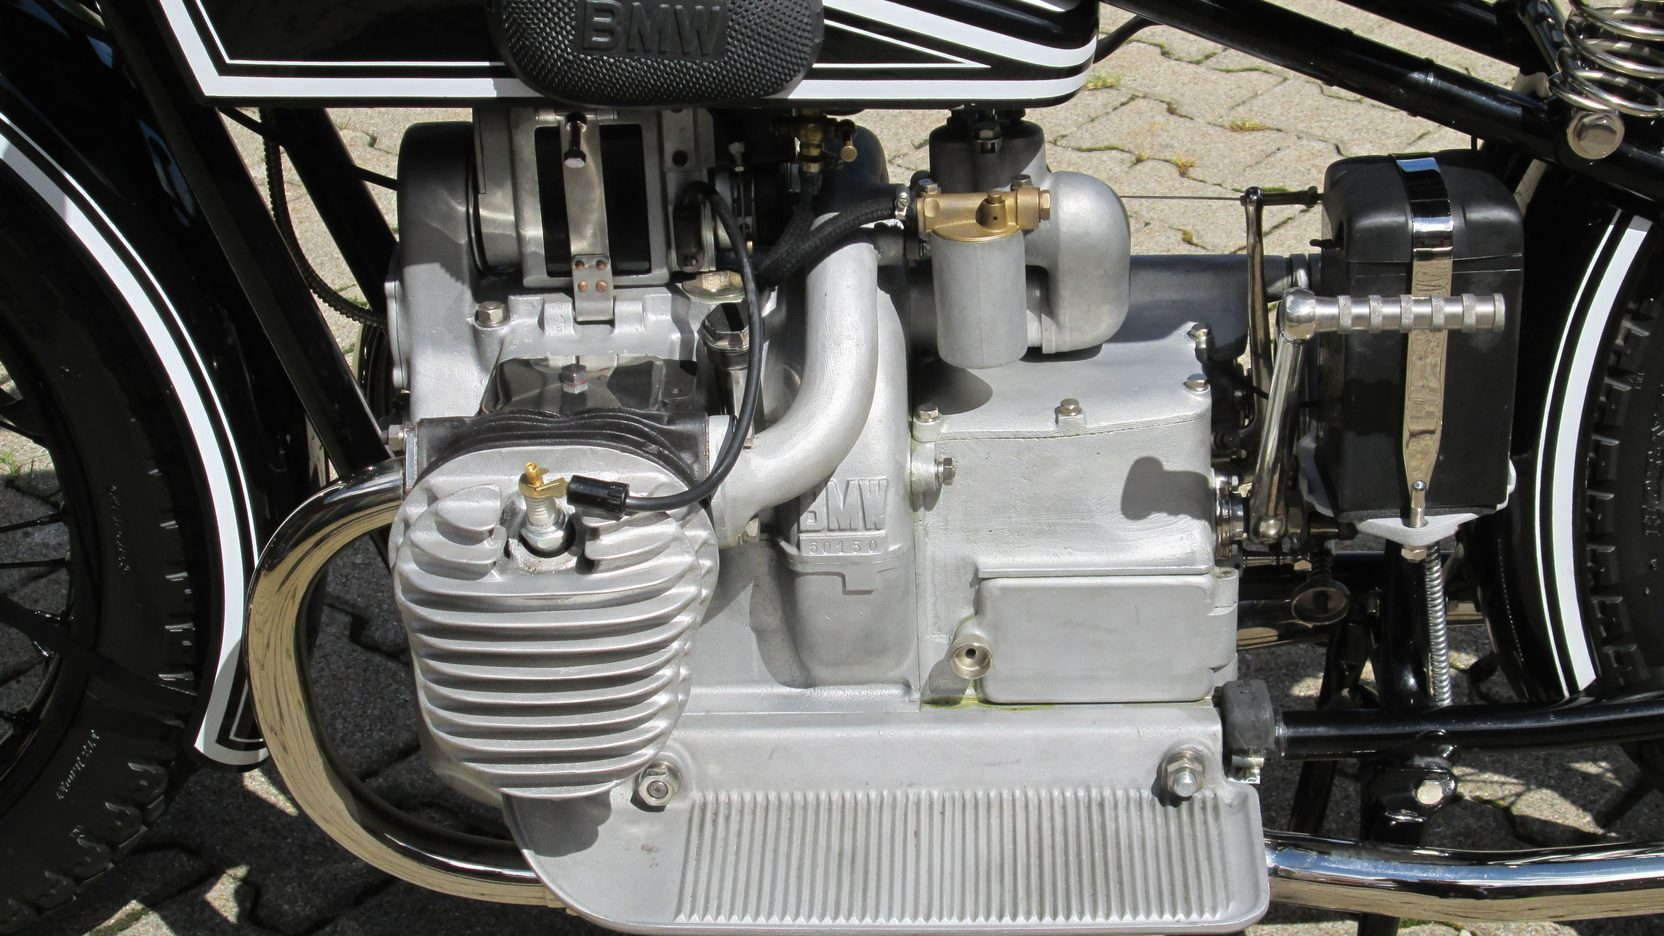 The horizontally opposed two cylinder engine would become the iconic BMW motorcycle engine.